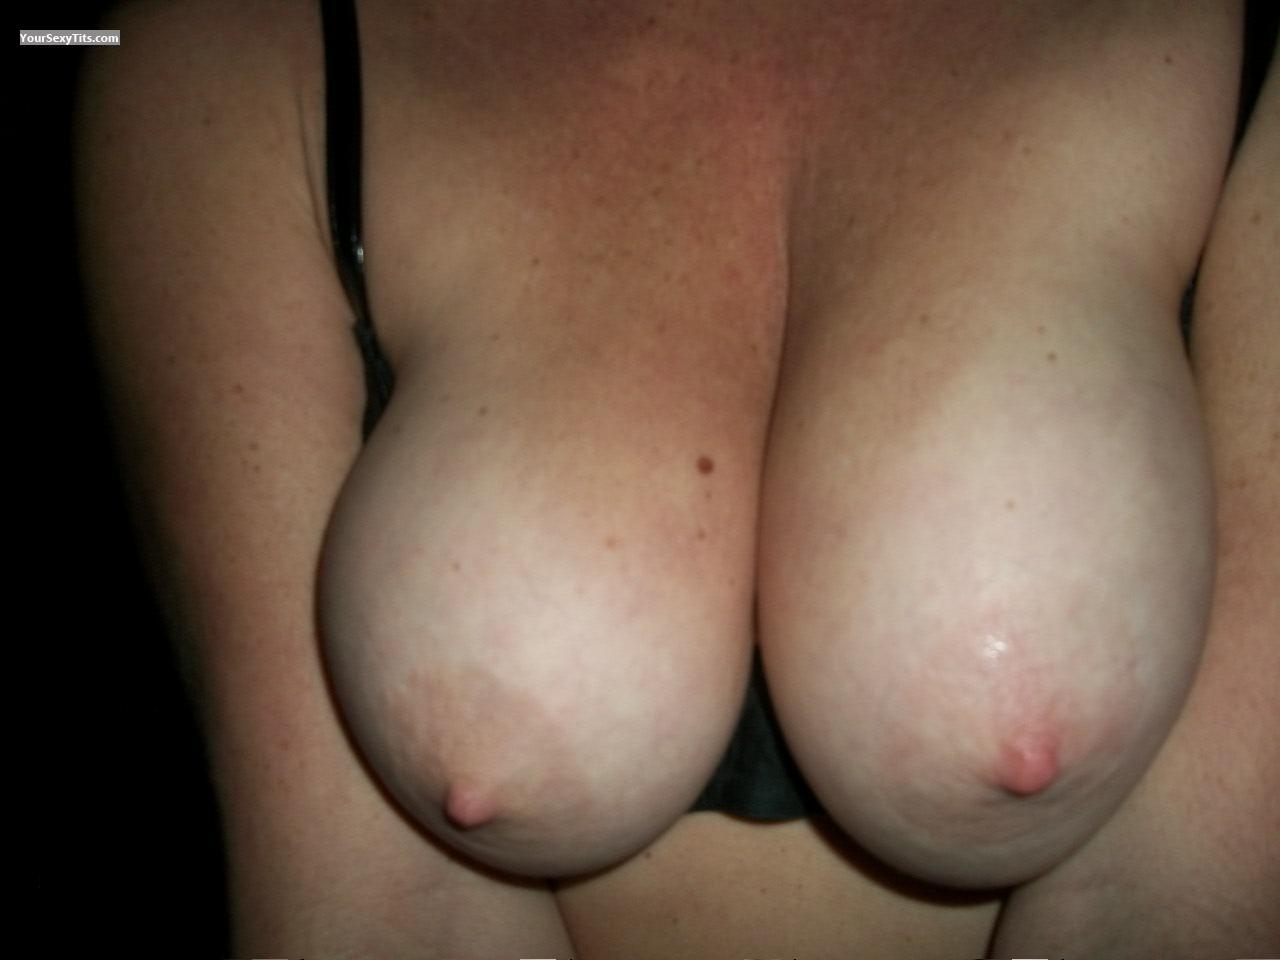 Tit Flash: Big Tits - T from United States